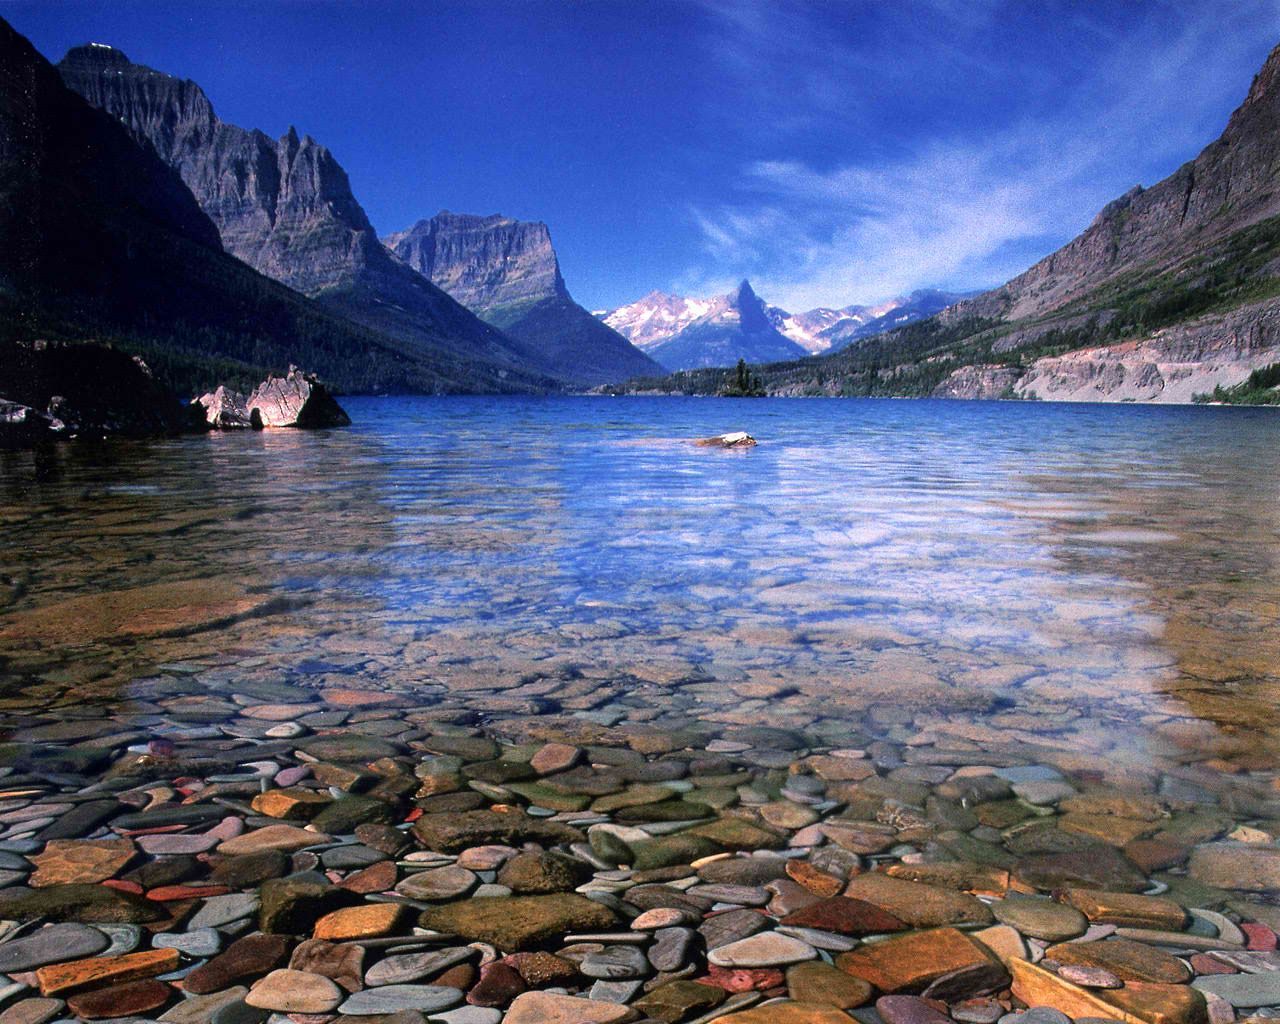 Glacier National Park Hope To Go Here With My Boys Soon One Of The Most Beautiful Places Glacier National Park Montana National Parks Glacier National Park